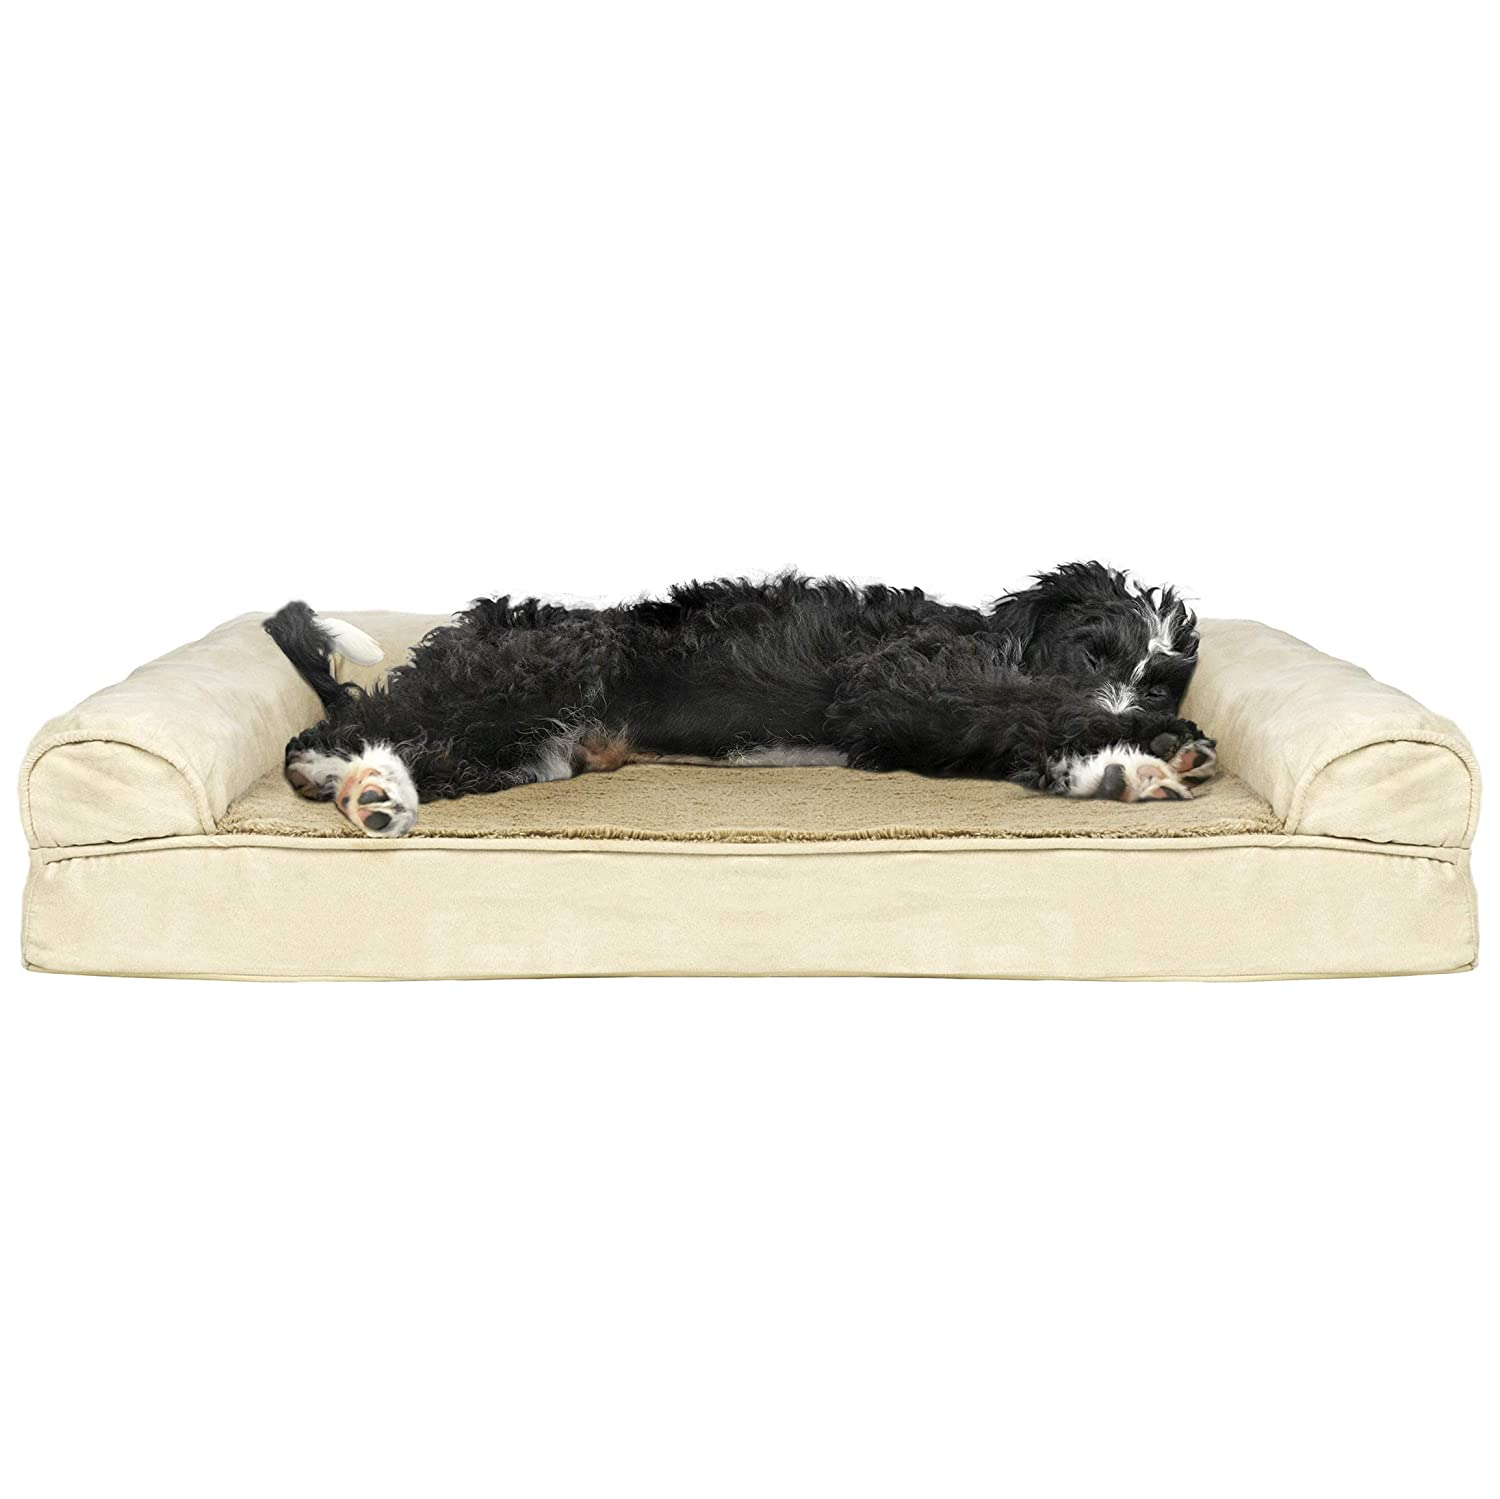 Furhaven Pet Dog Bed Orthopedic Sofa-Style Living Room Couch Pet Bed for Dogs Cats – Available in Multiple Colors Styles Renewed